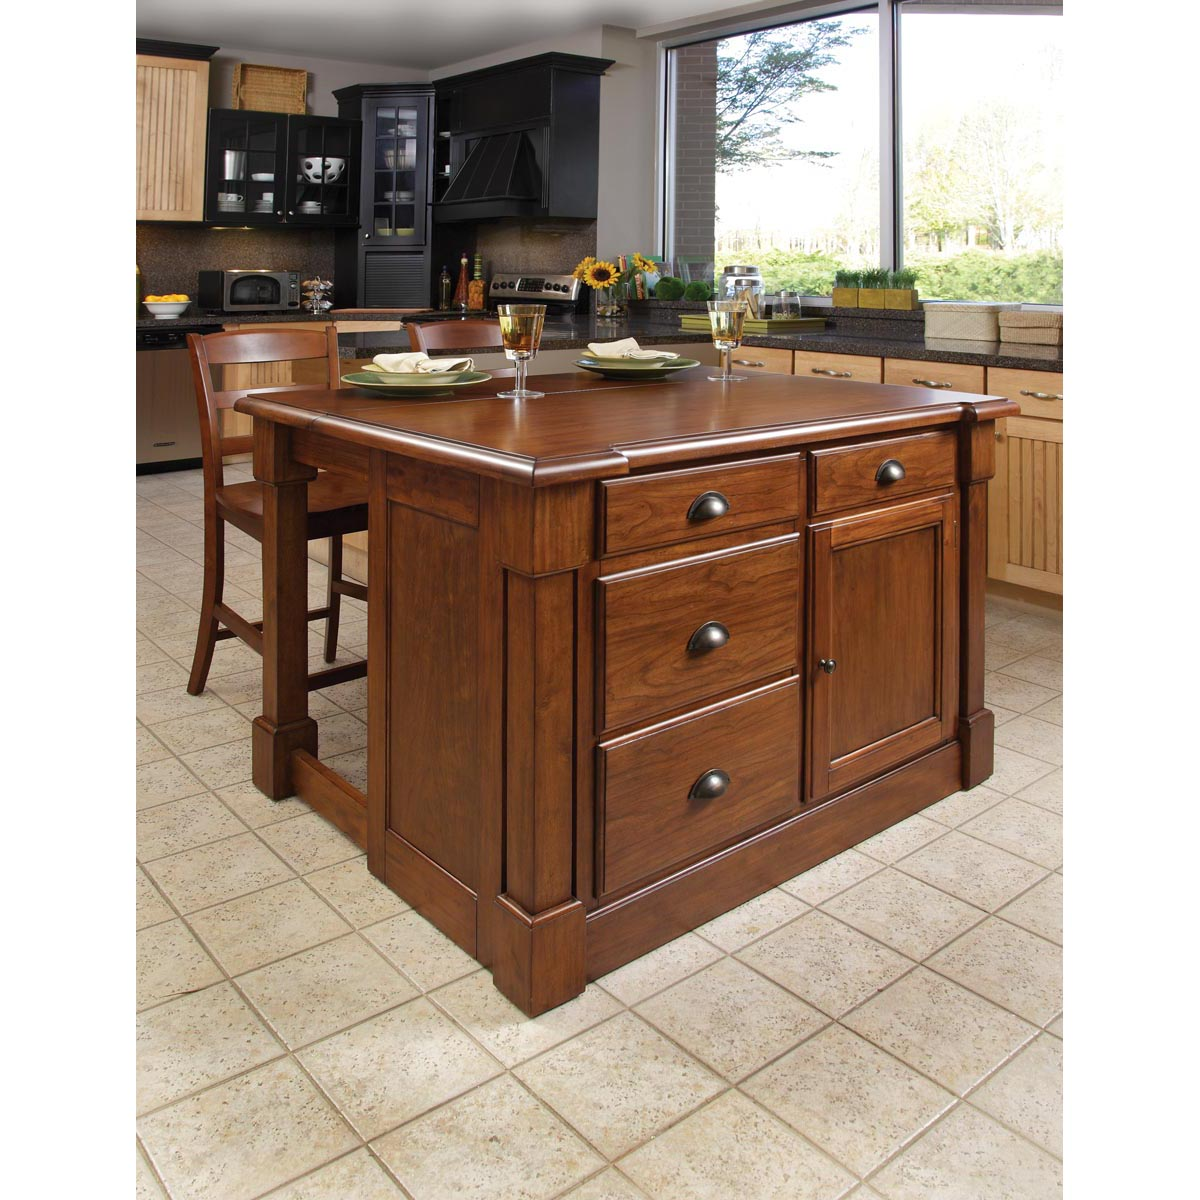 Home Styles Aspen Rustic Cherry Kitchen Island and Two Ba...